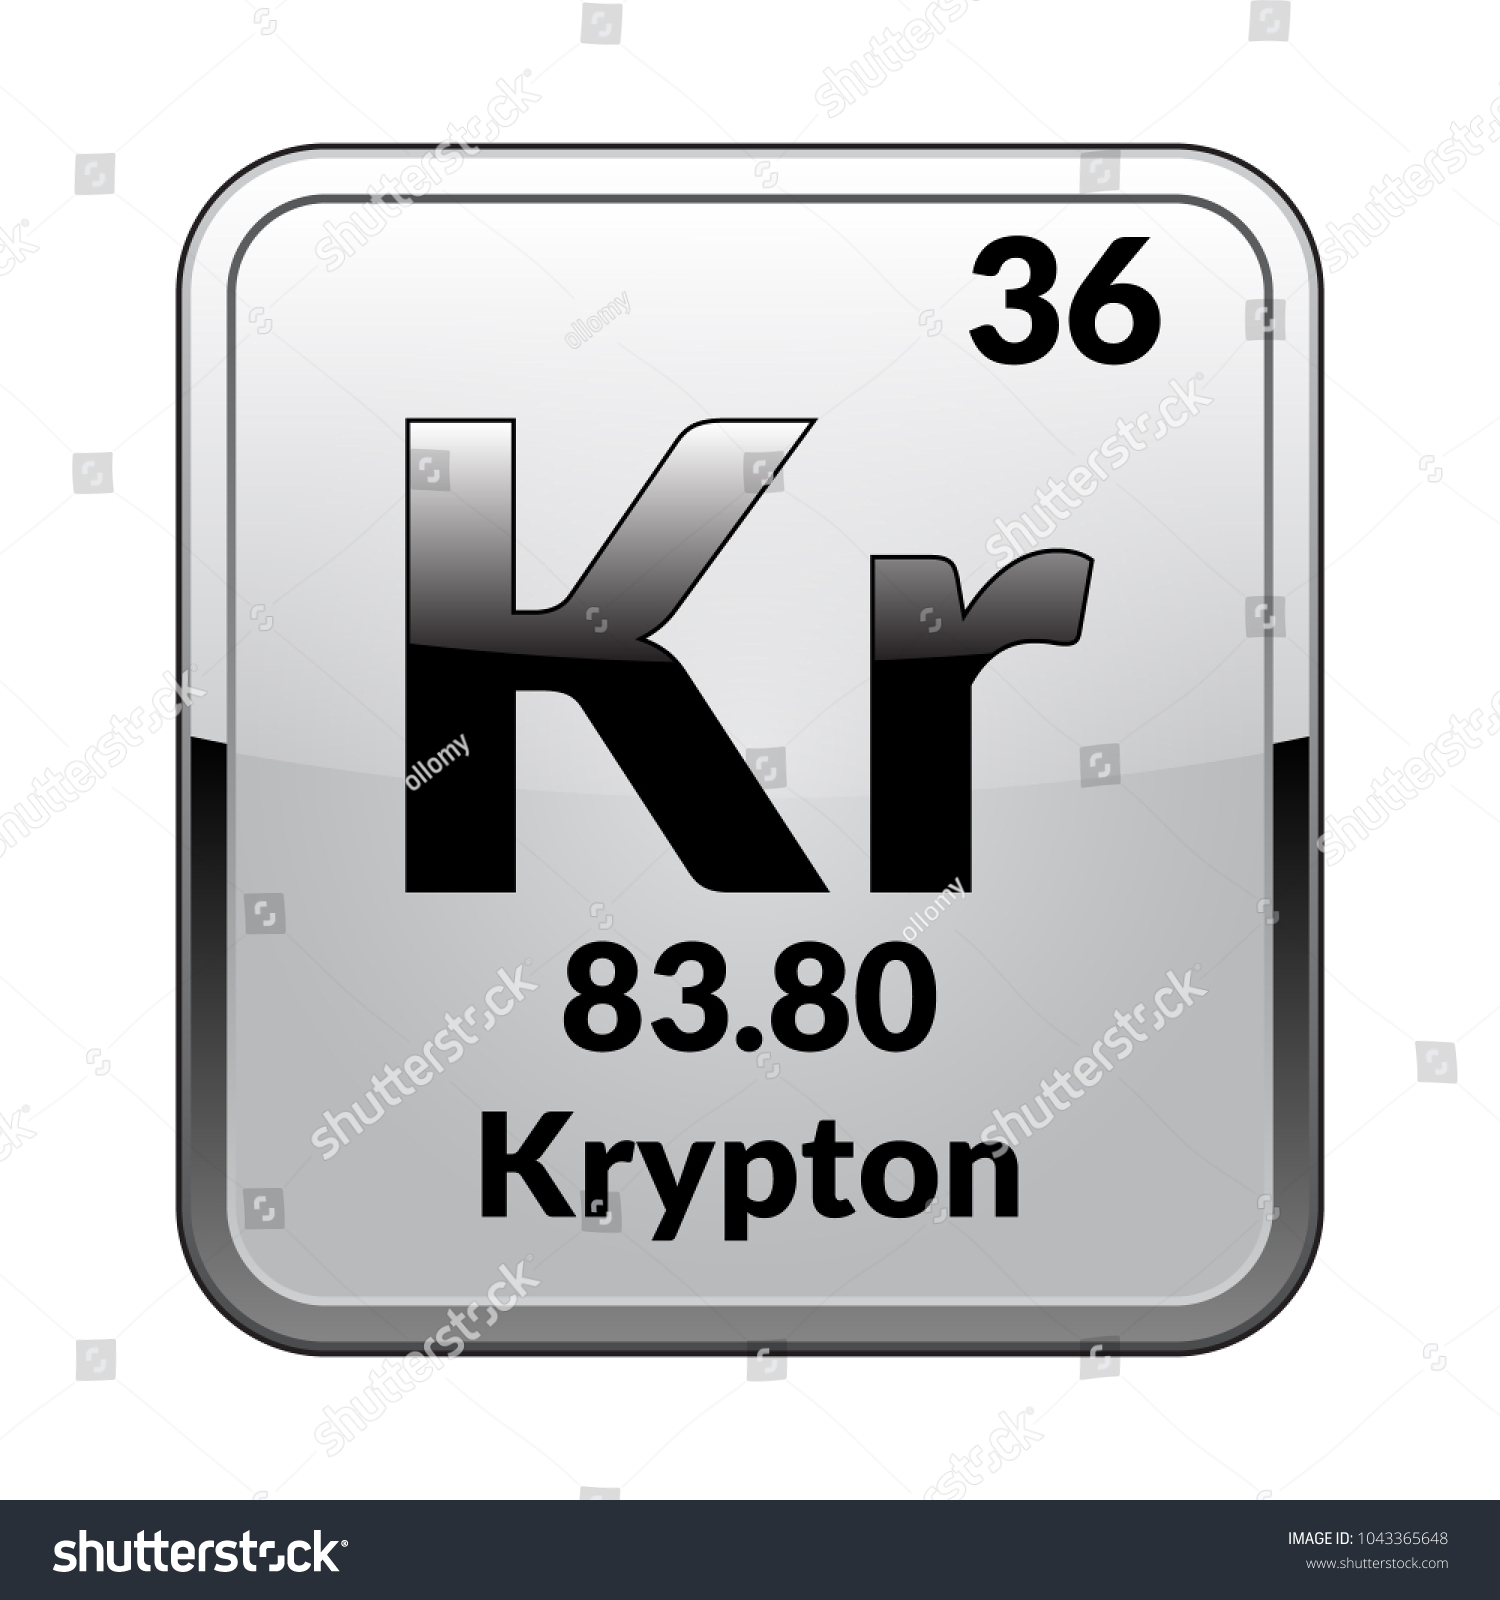 Krypton symbol chemical element periodic table on stock vector krypton symbolemical element of the periodic table on a glossy white background in a urtaz Choice Image